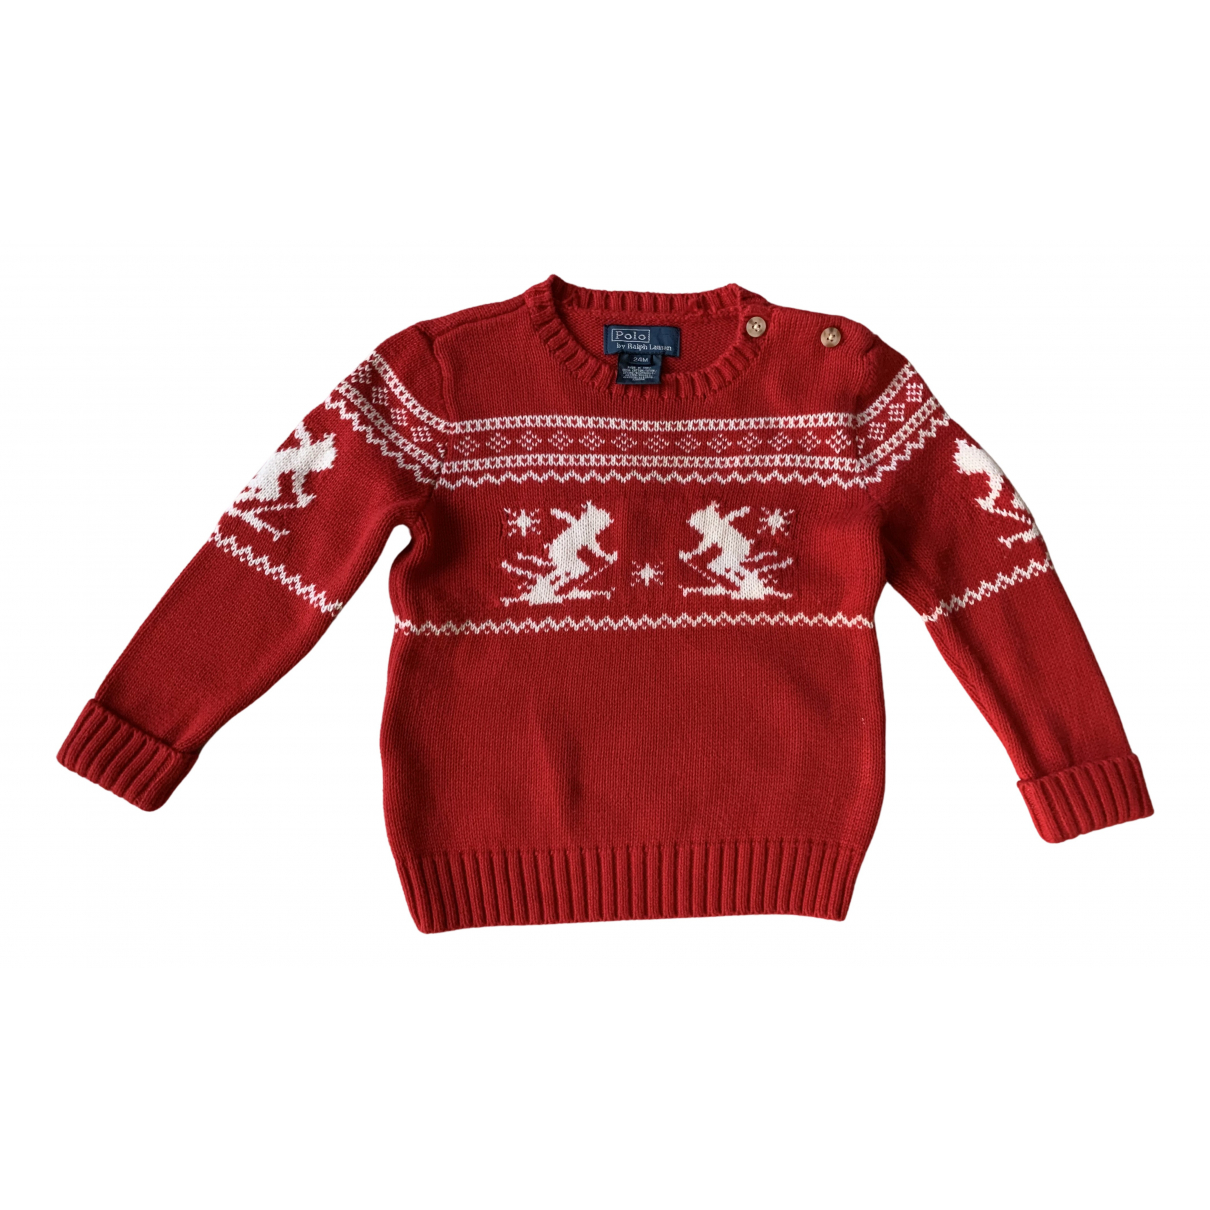 Polo Ralph Lauren N Red Cotton Knitwear for Kids 2 years - up to 86cm FR